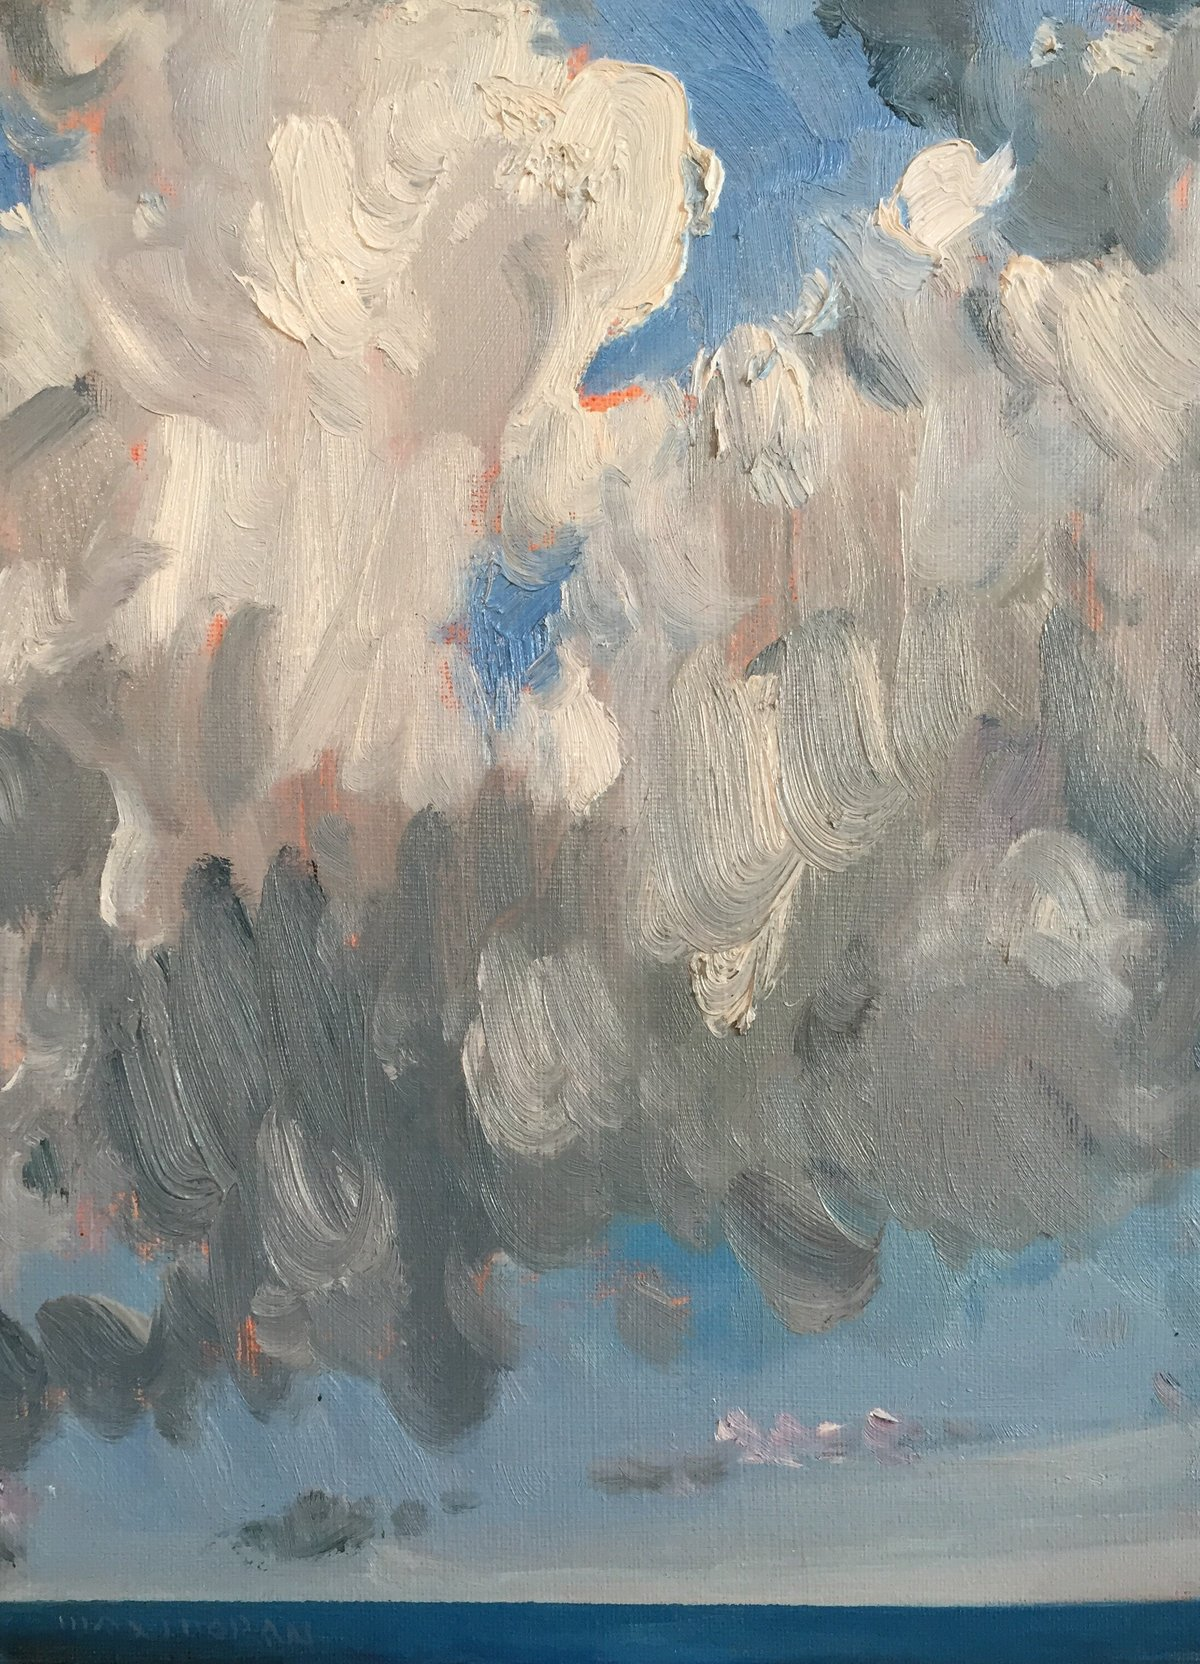 Clouds over the Bay 9x12 oop 1,500